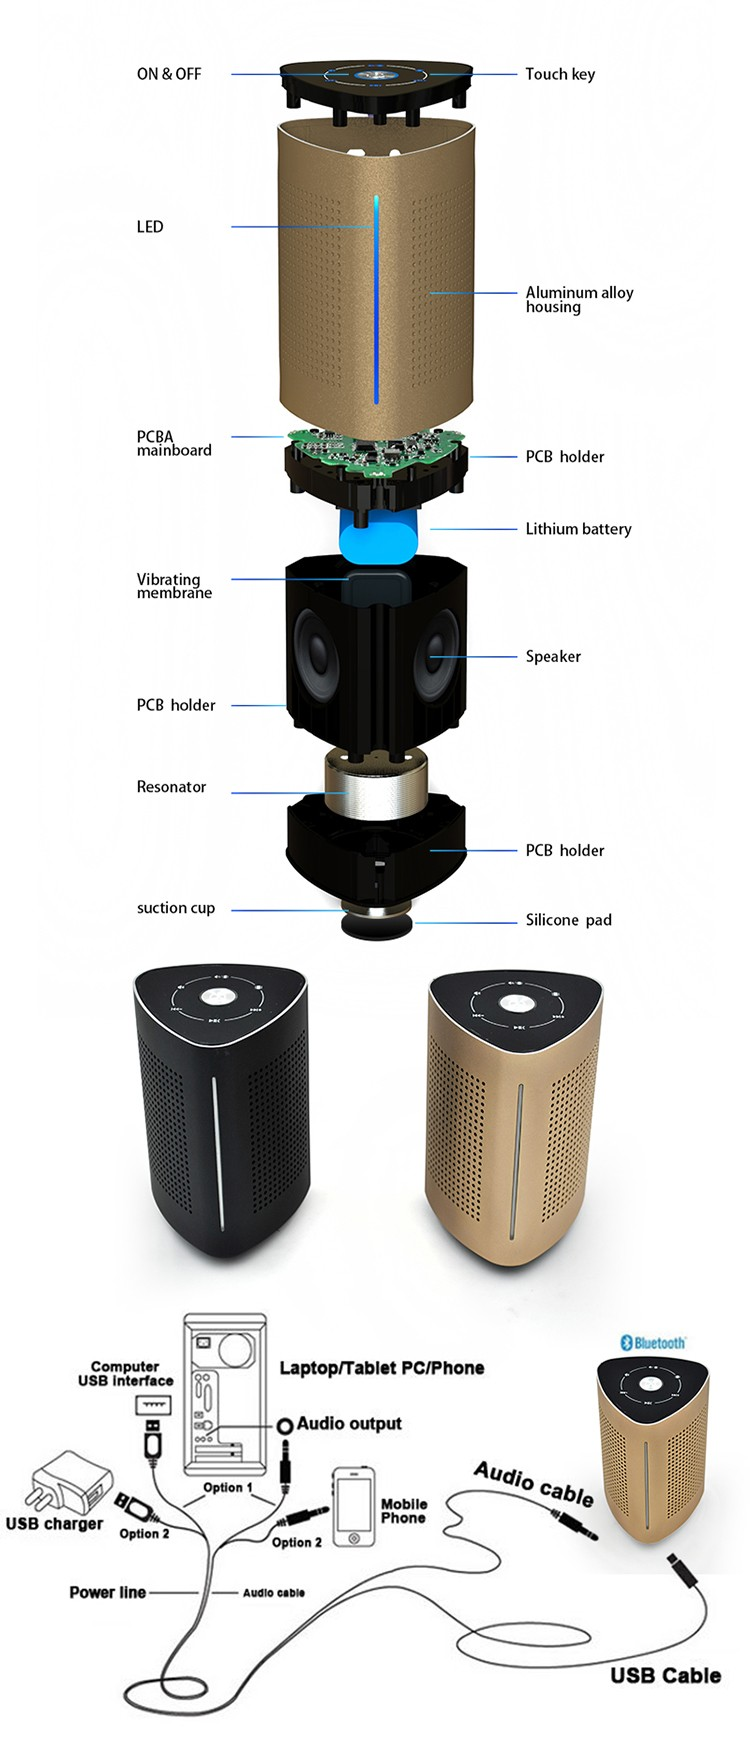 36W high power super bass Blue tooth best vibration resonance speaker with 360 degree hifi stereo